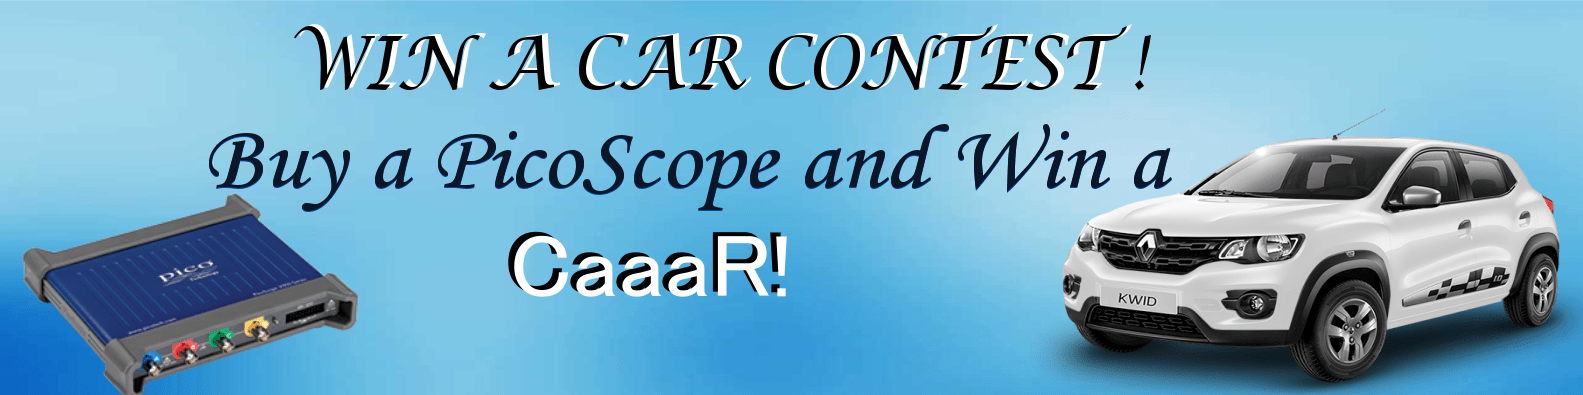 WIN A CAR CONTEST VIGVEN PICOSCOPE